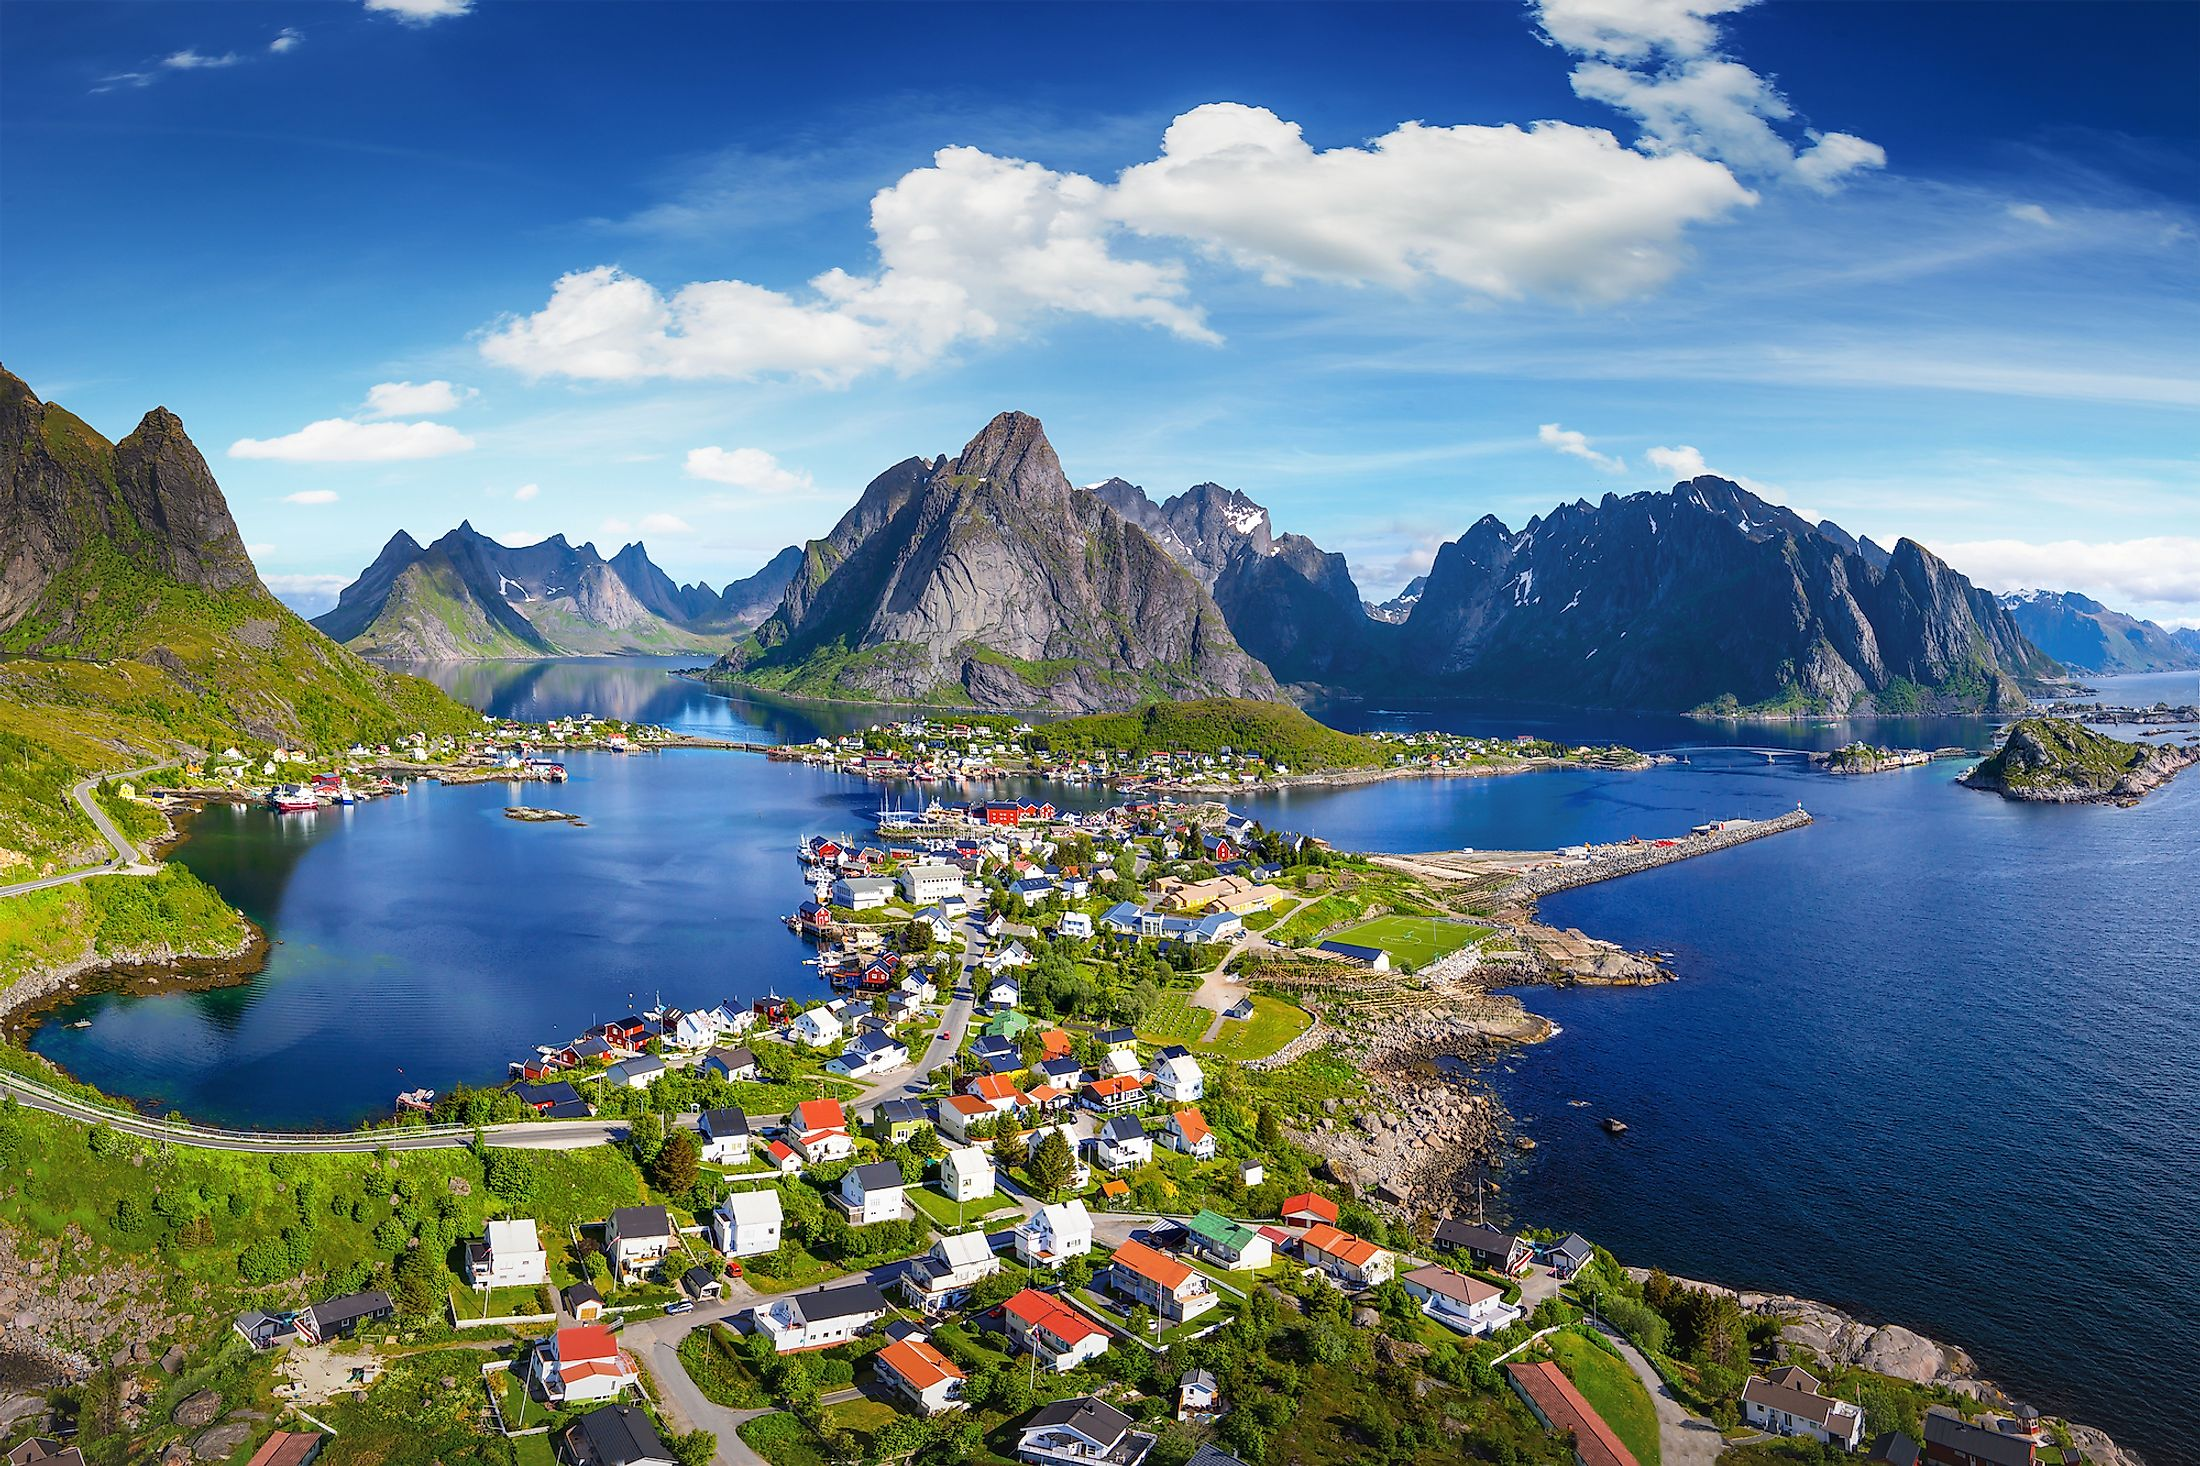 A scenic landscape in Norway. Image credit: IM_photo/Shutterstock.com